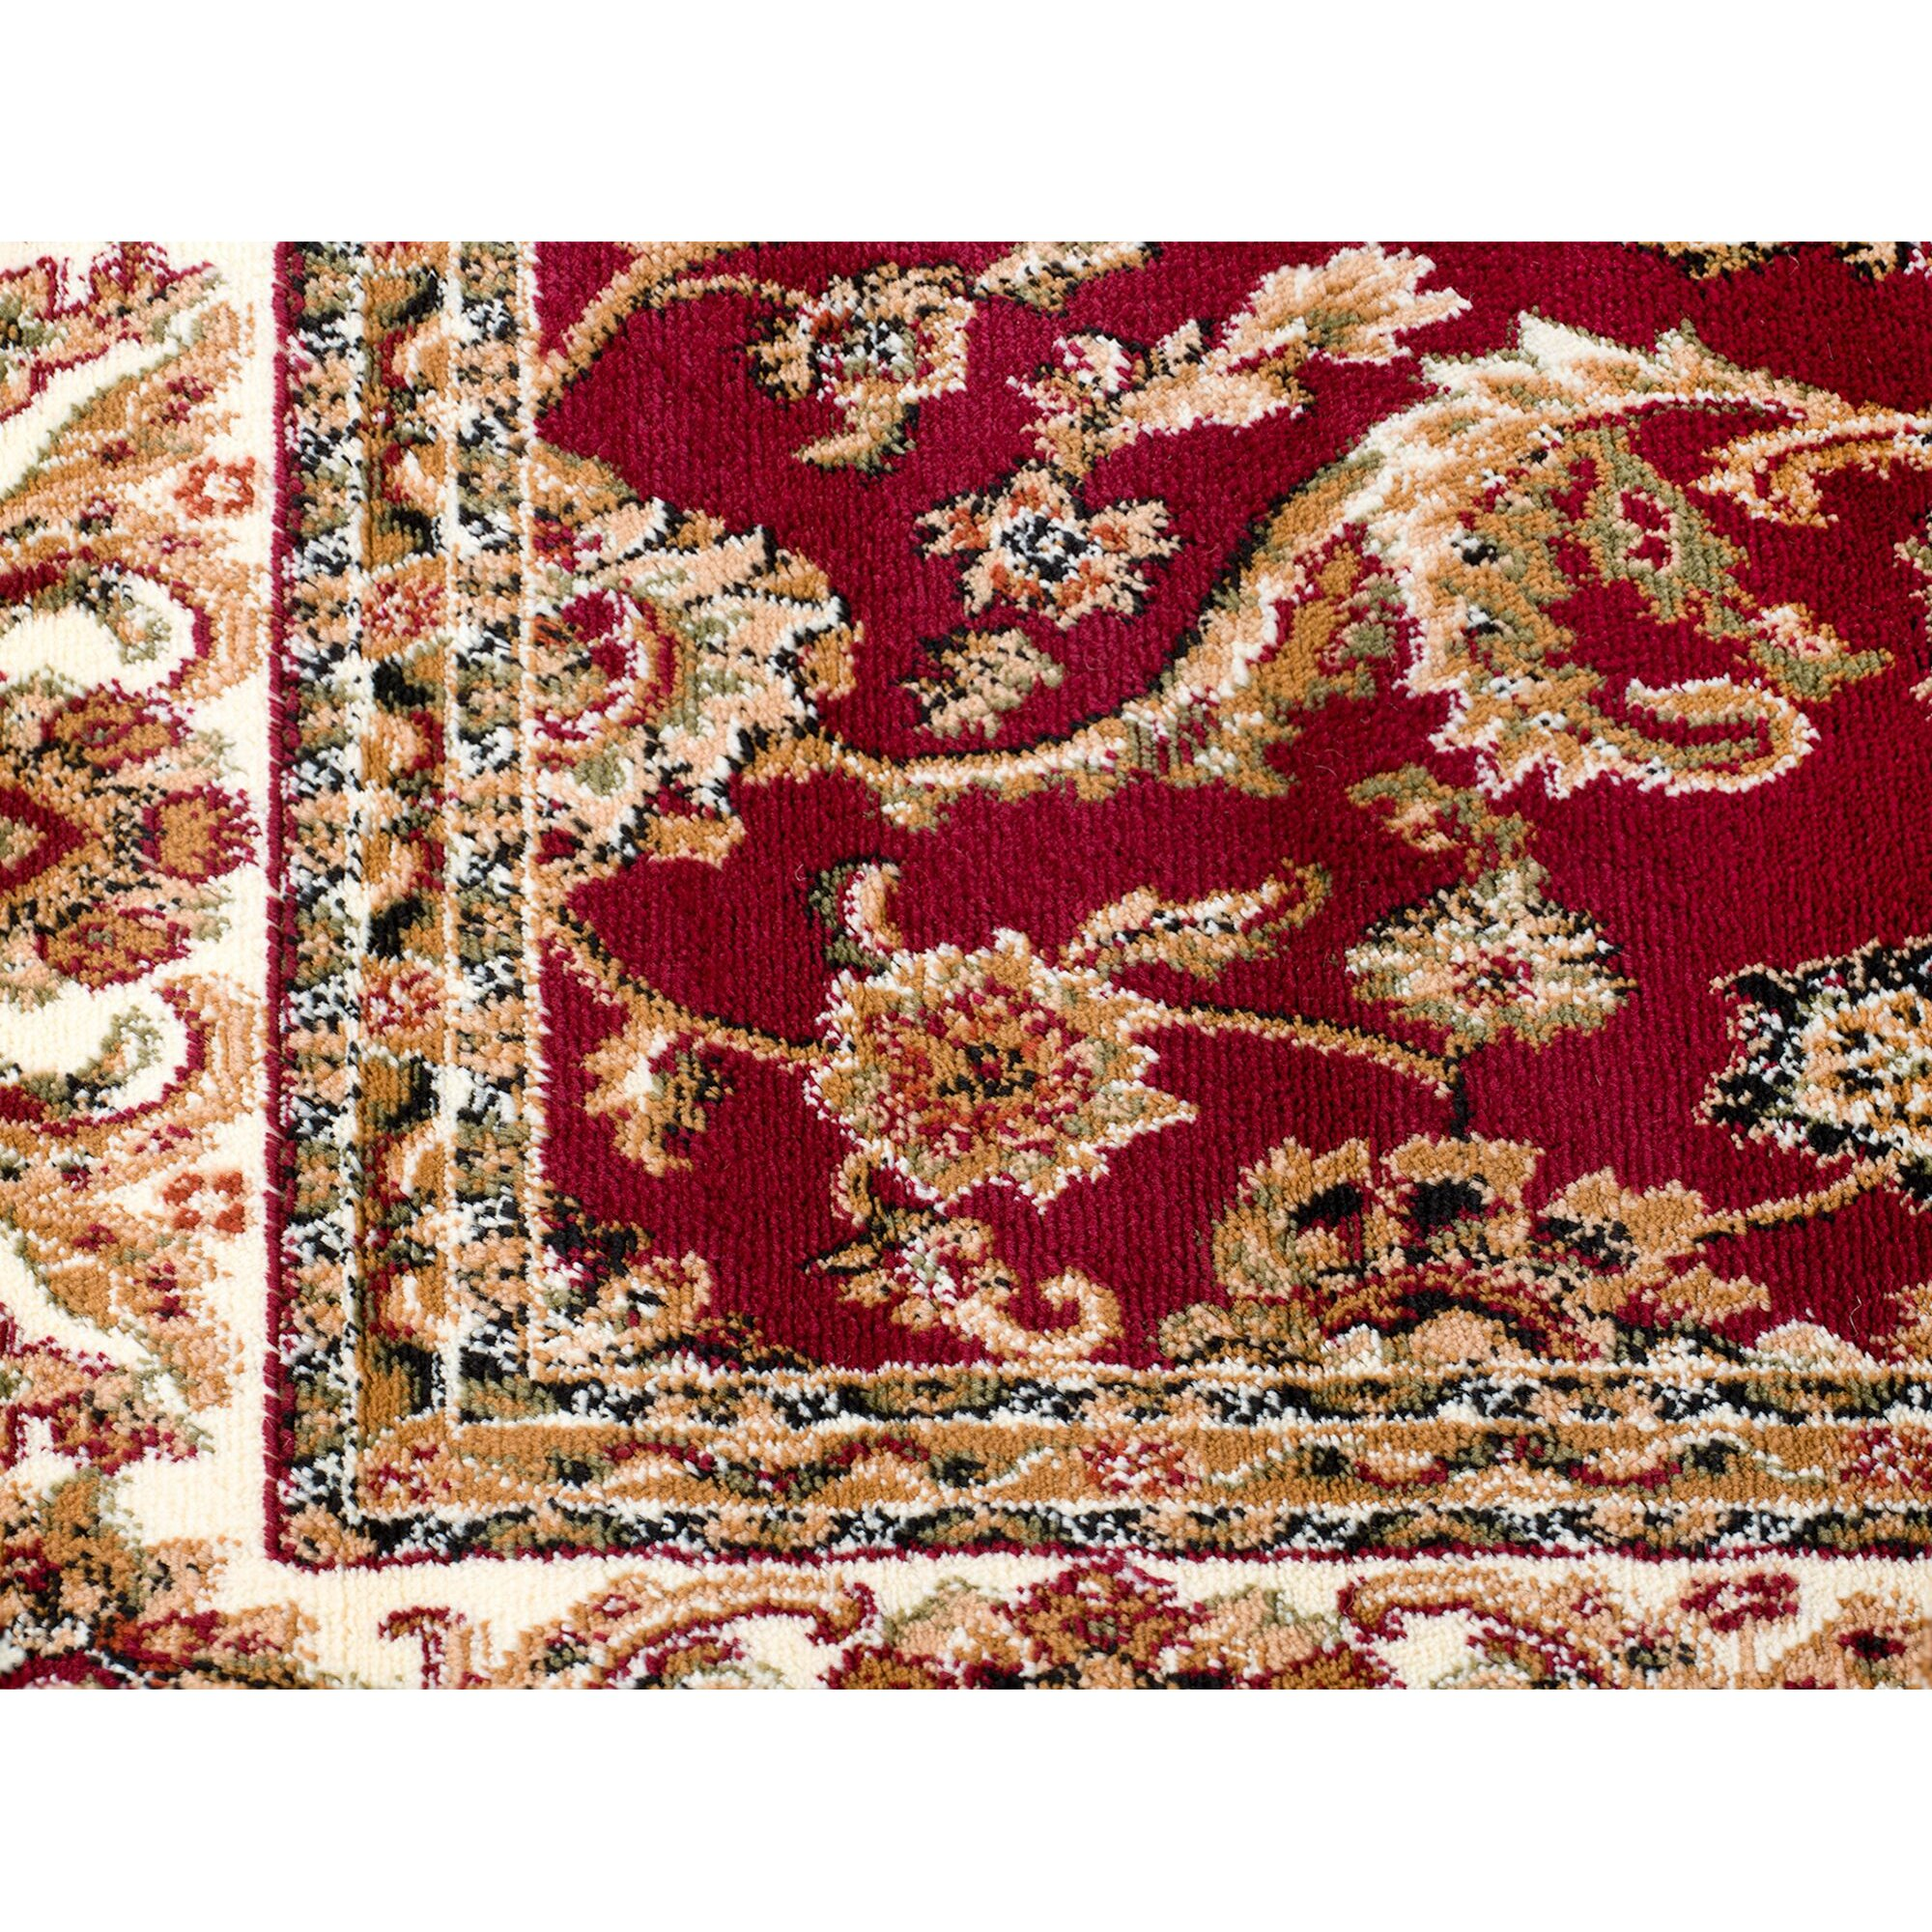 Rug And Decor Inc Summit Brown Burgundy Area Rug